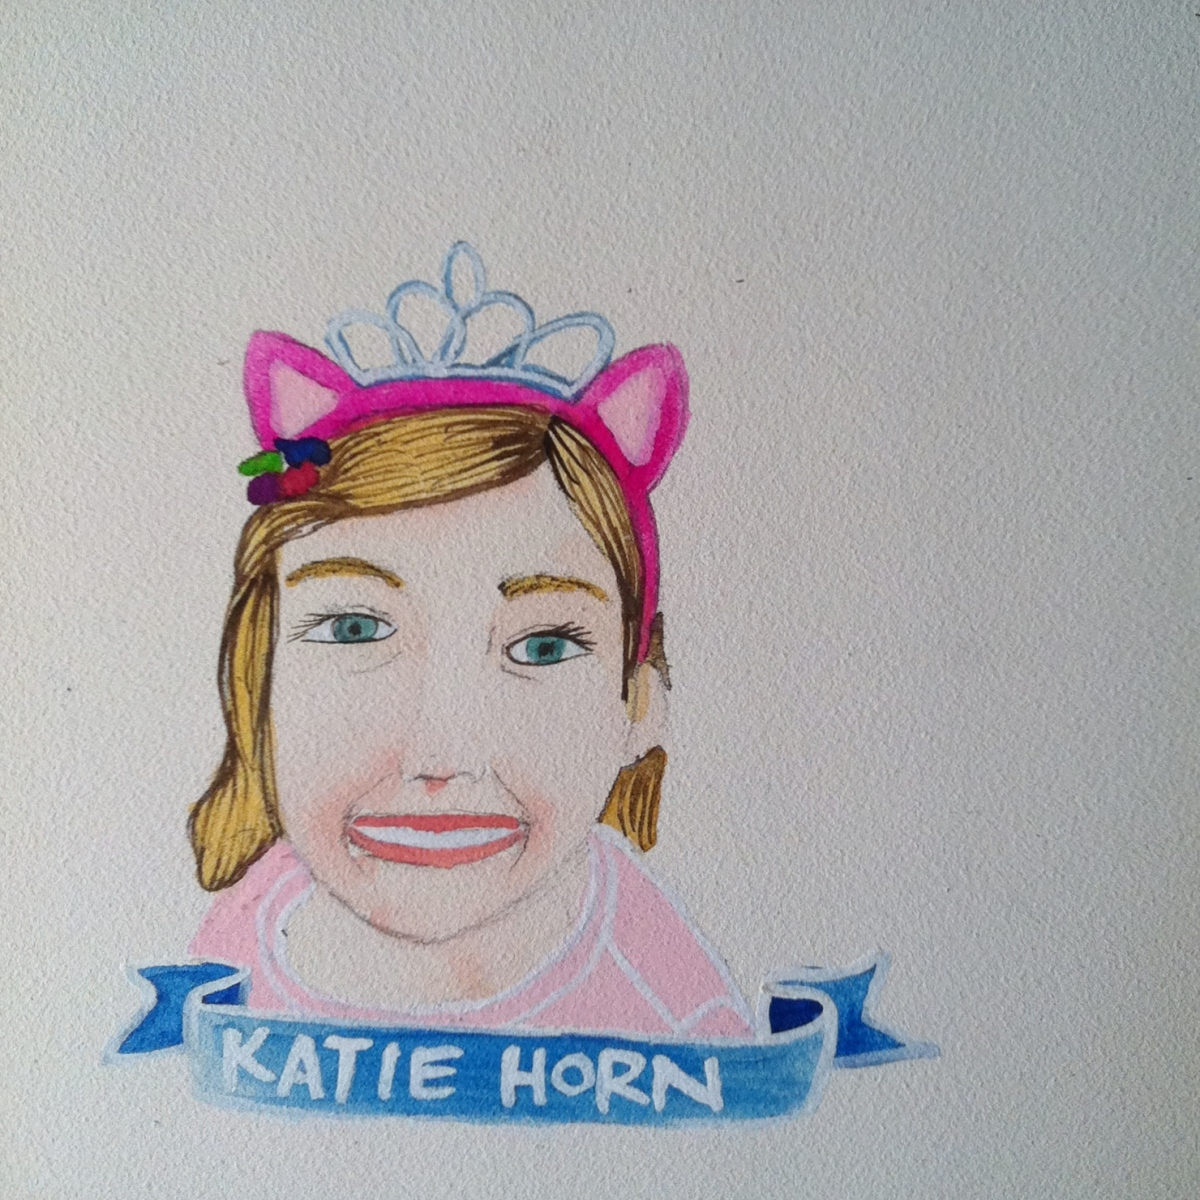 Talent Loves Company at Barbara Archer Gallery: 365 portraits by Lydia Walls - Katie Horn